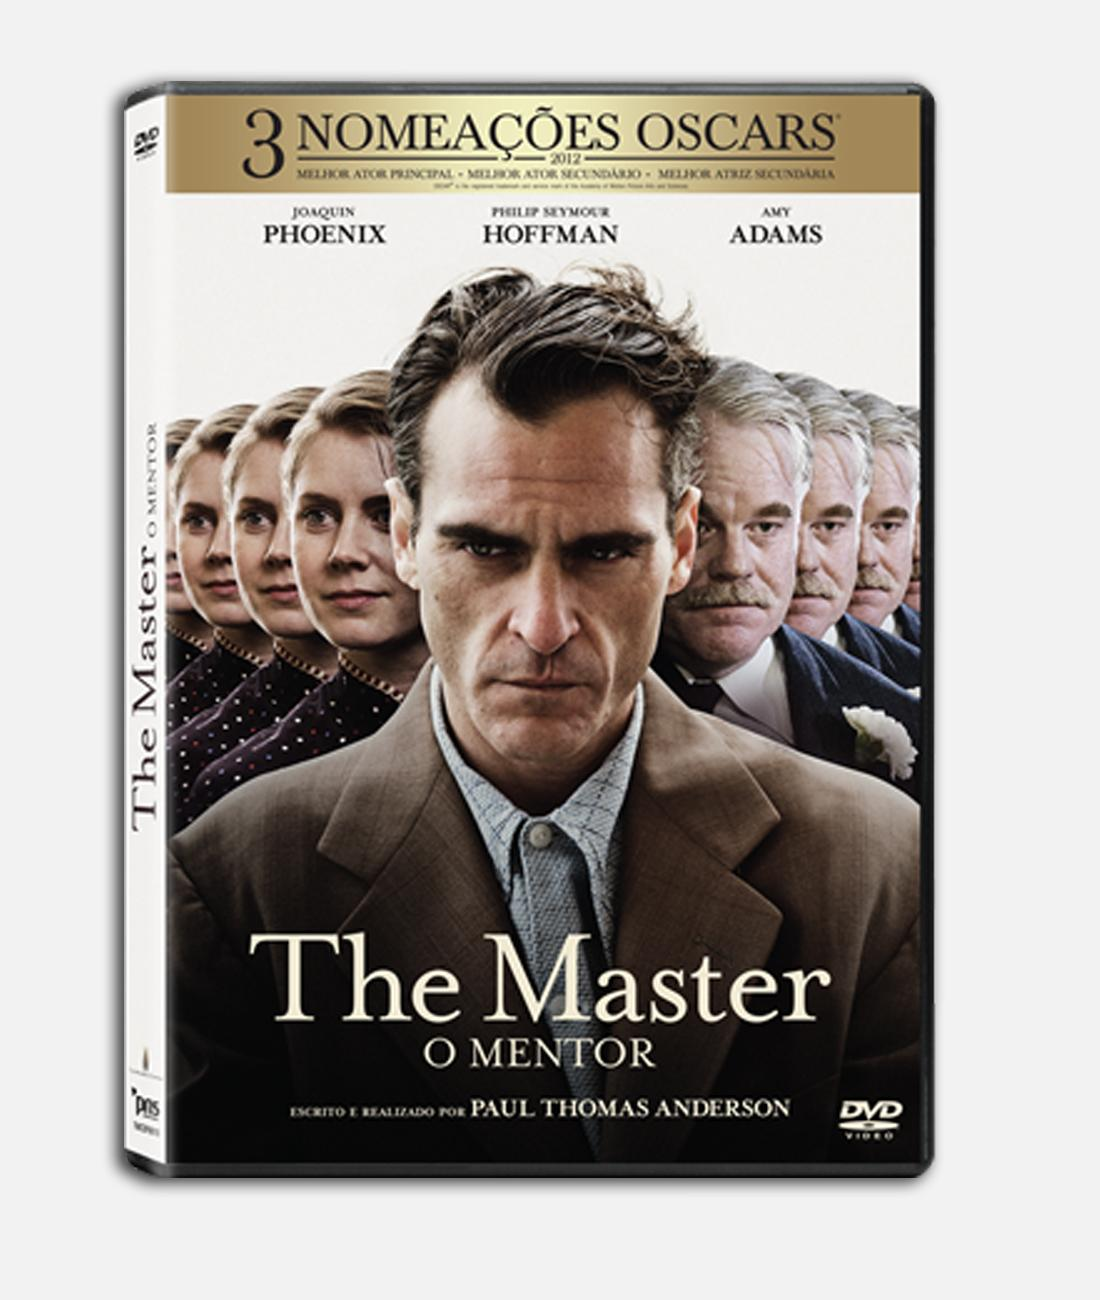 Ganha o dvd The Master - O Mentor